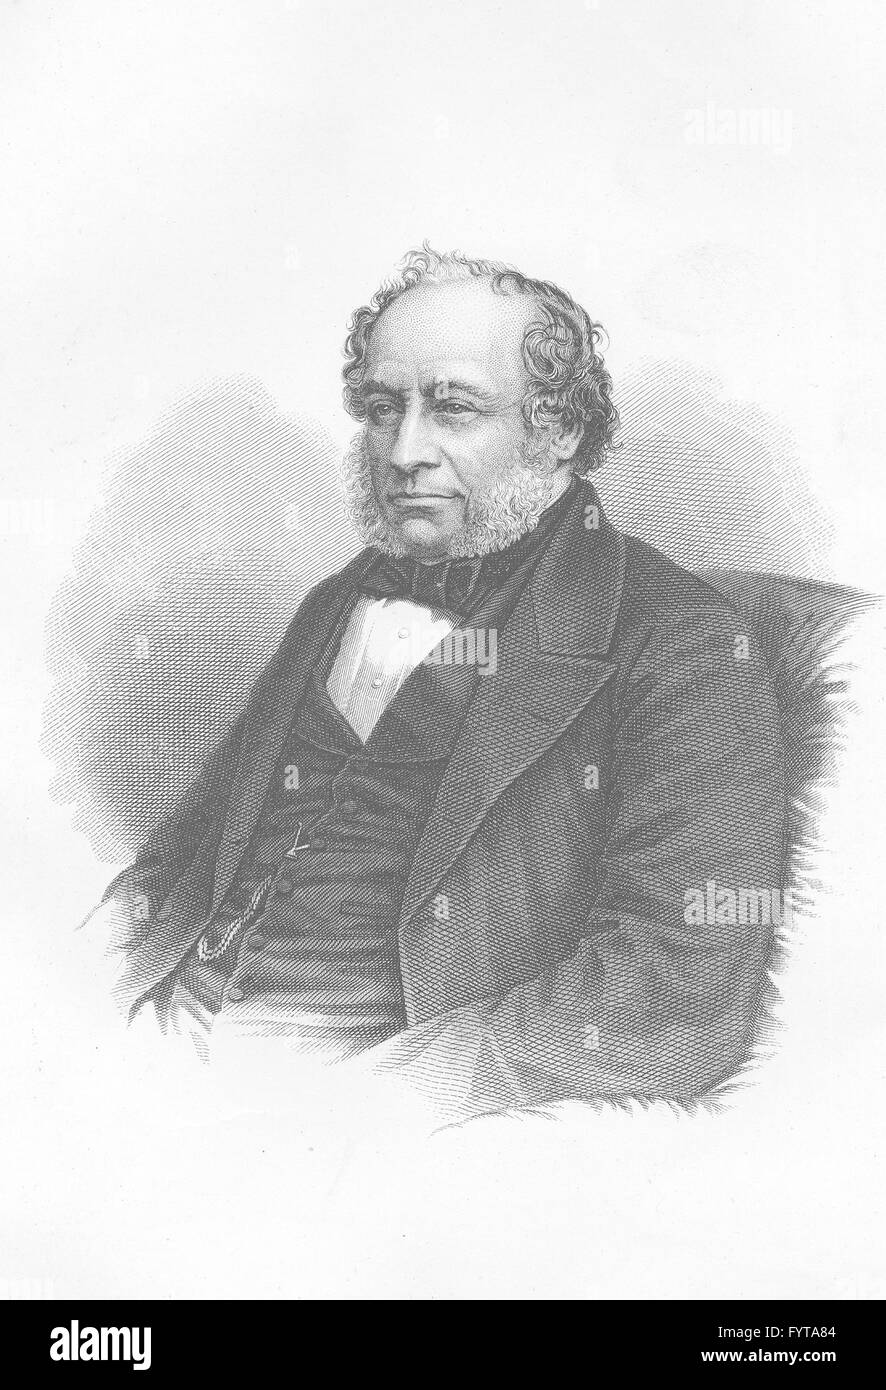 LONDON ARCHITECTS: Sir Charles Barry, antique print c1880 - Stock Image